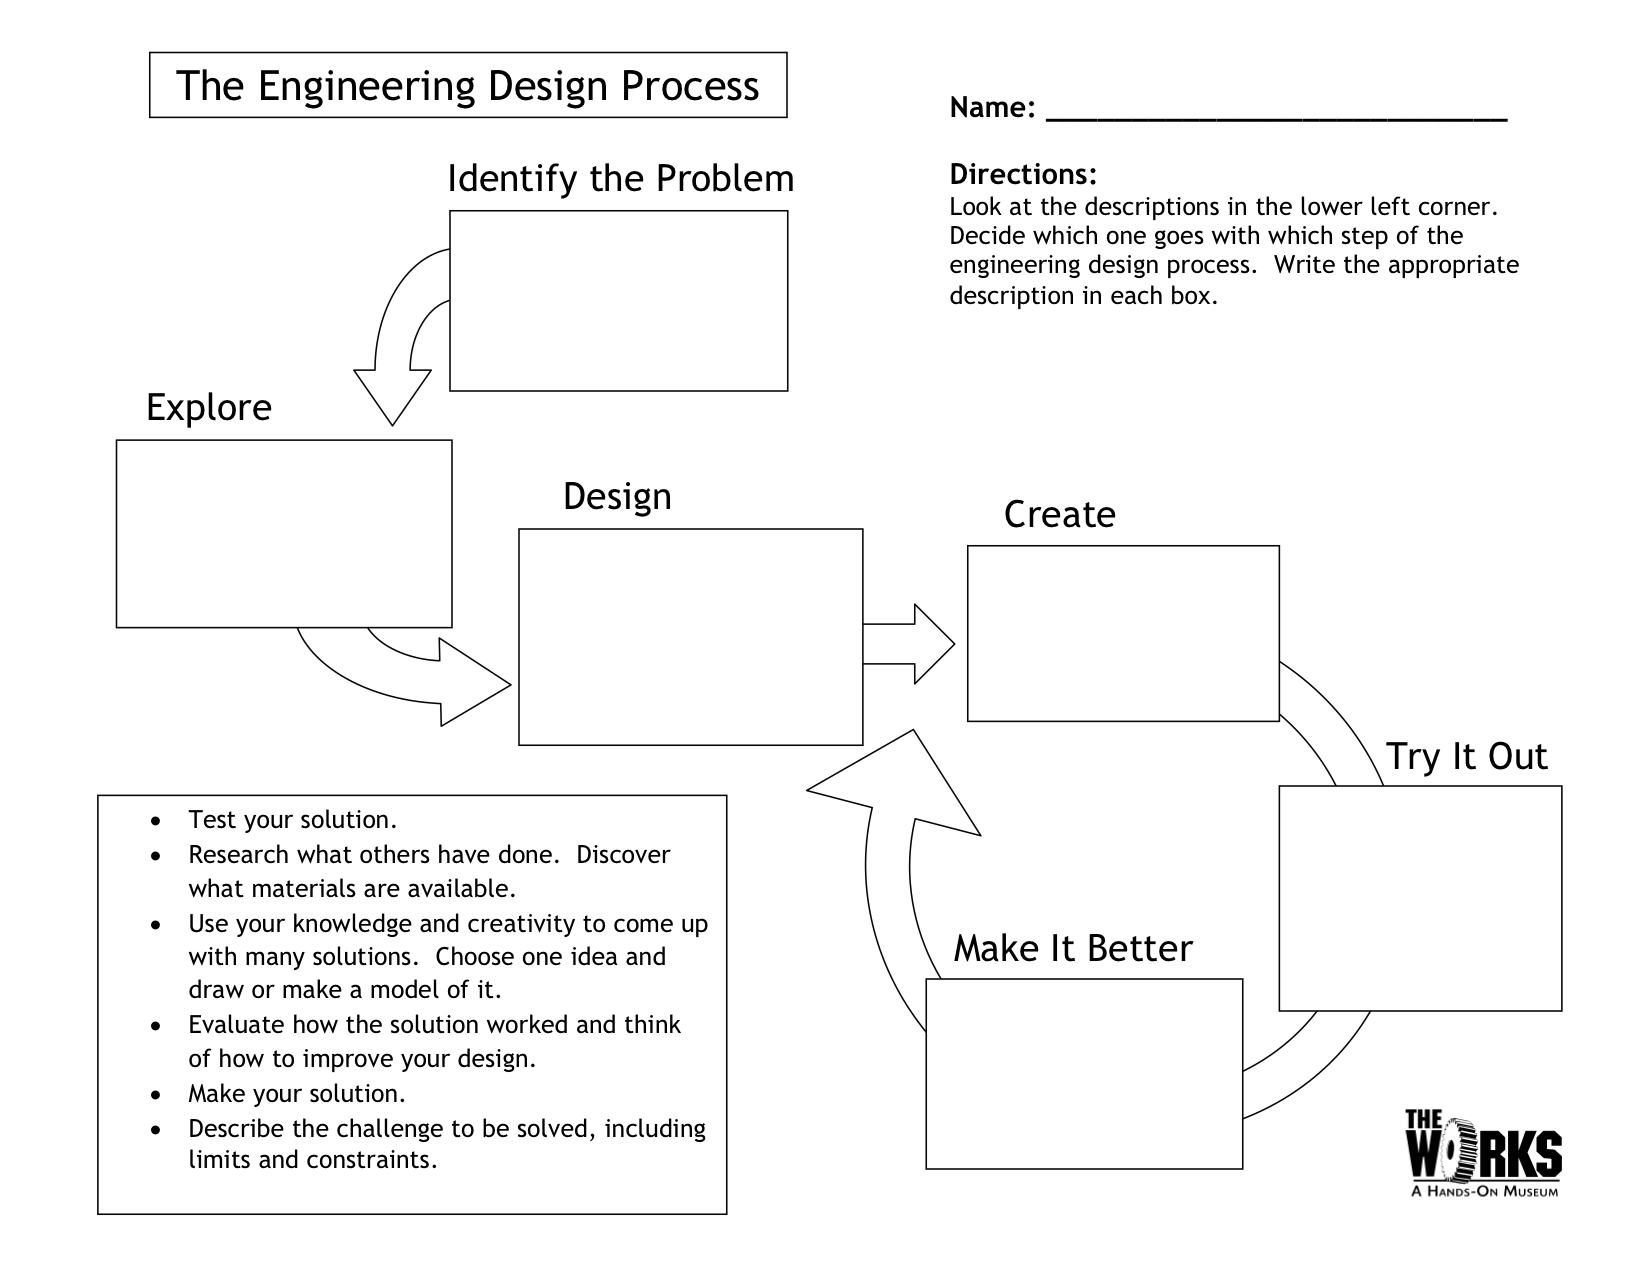 The Engineering Design Process And Innovation